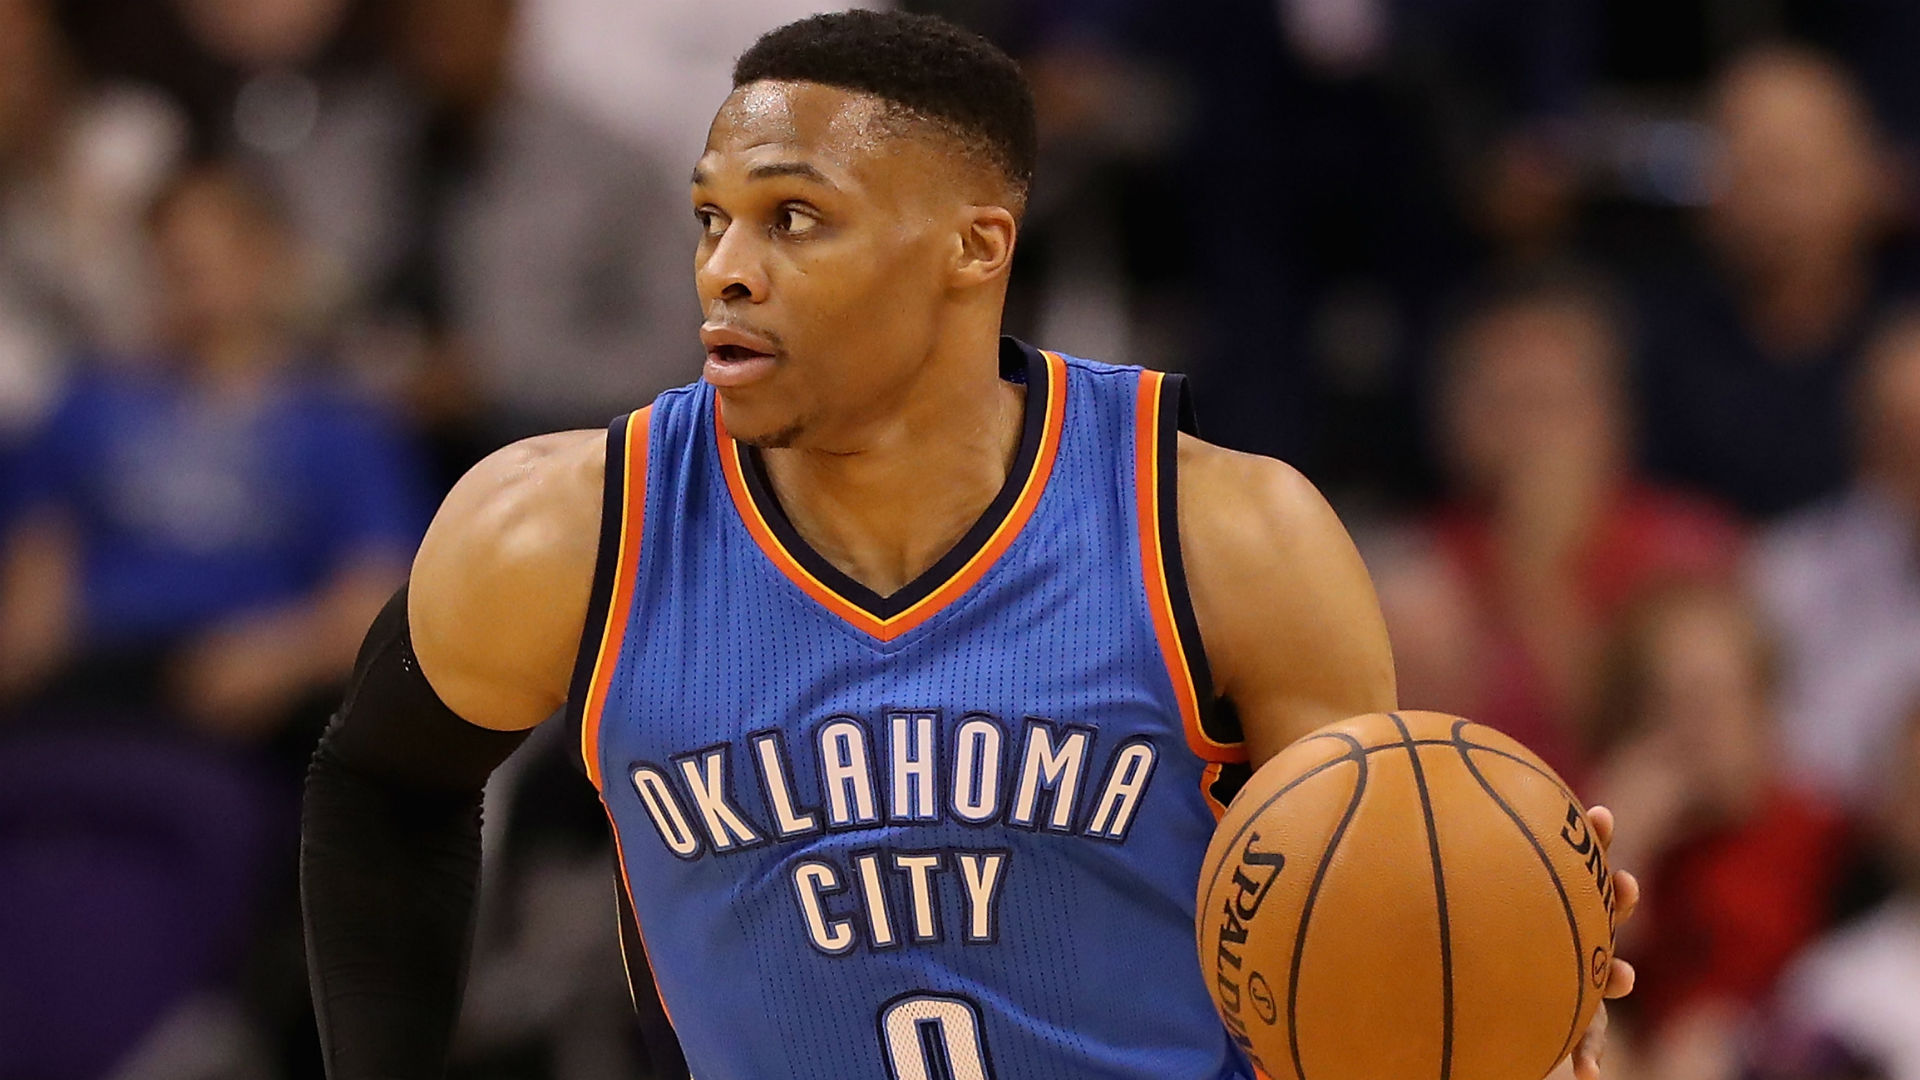 Boy Hairstyle Hd Wallpaper Russell Westbrook S Newborn Son Receives First College